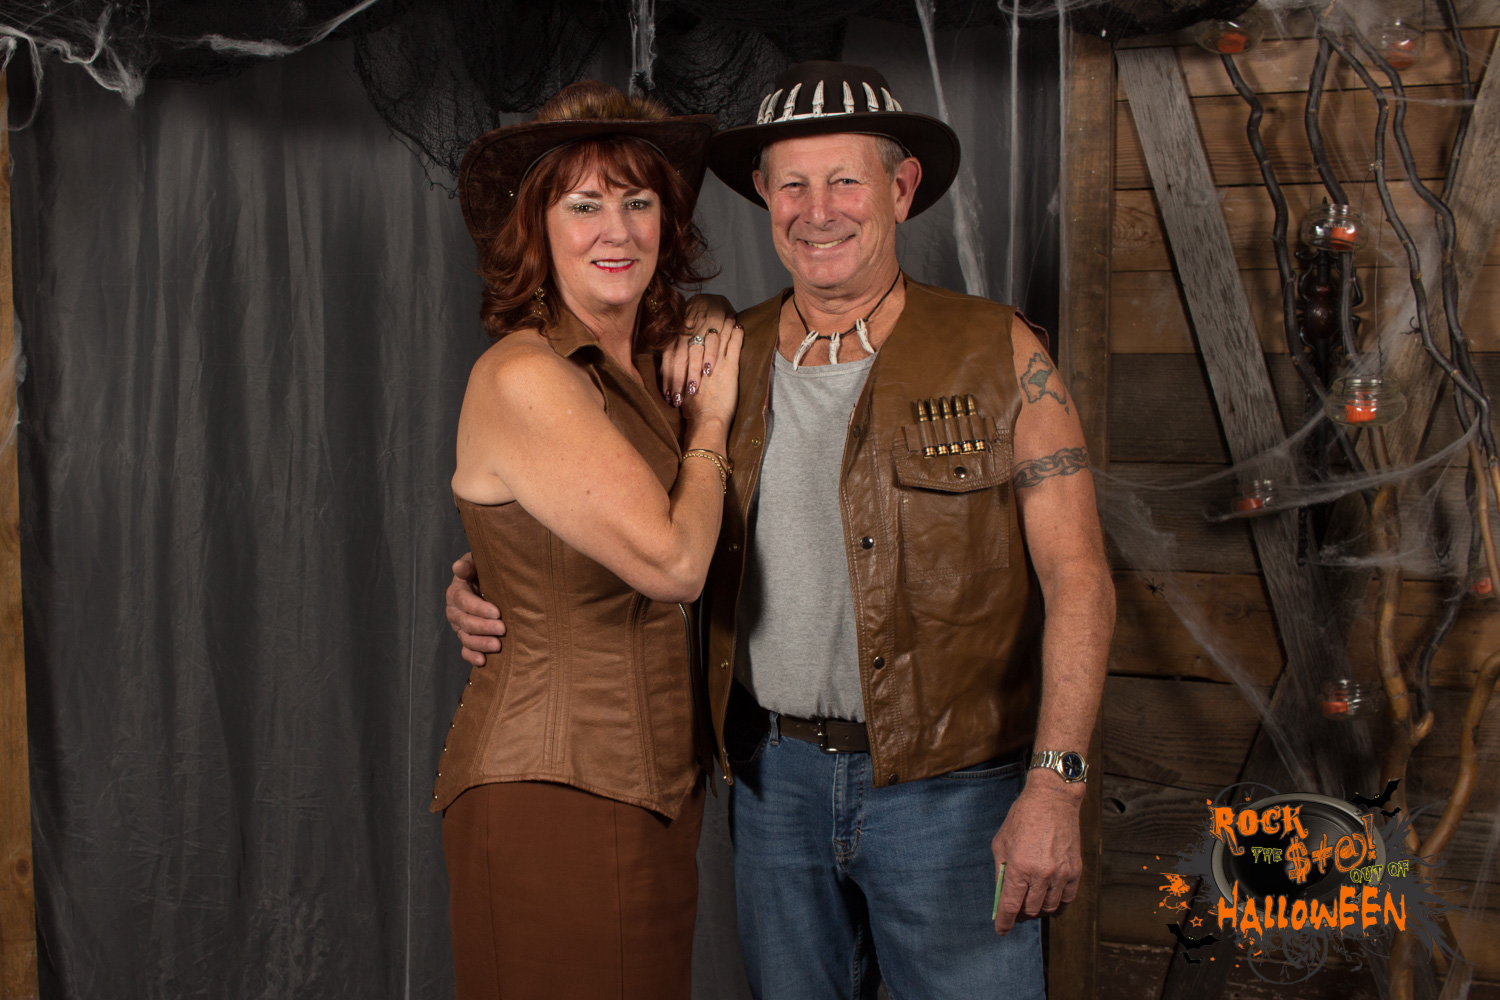 Halloween-PhotoBooth-002-6665